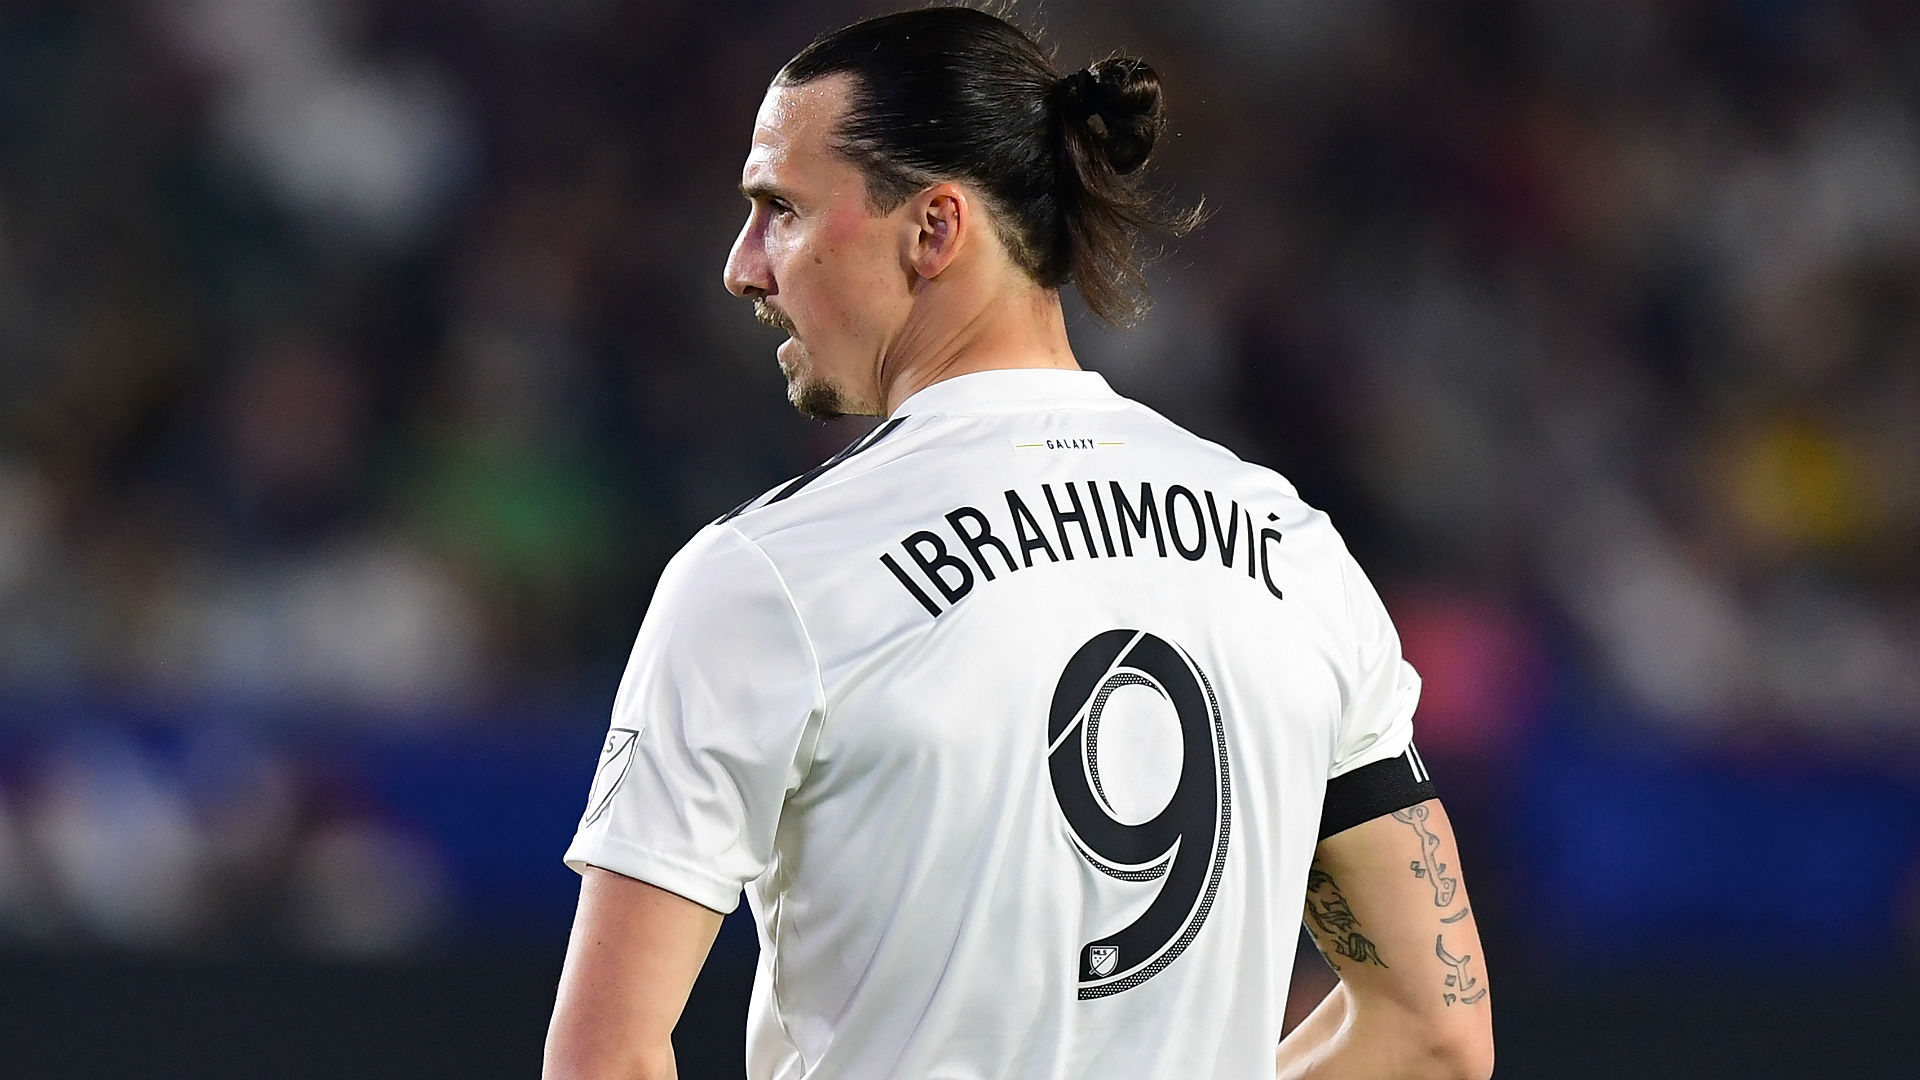 Watch Zlatan Ibrahimovic's 500th goal - straight out of Shaolin soccer